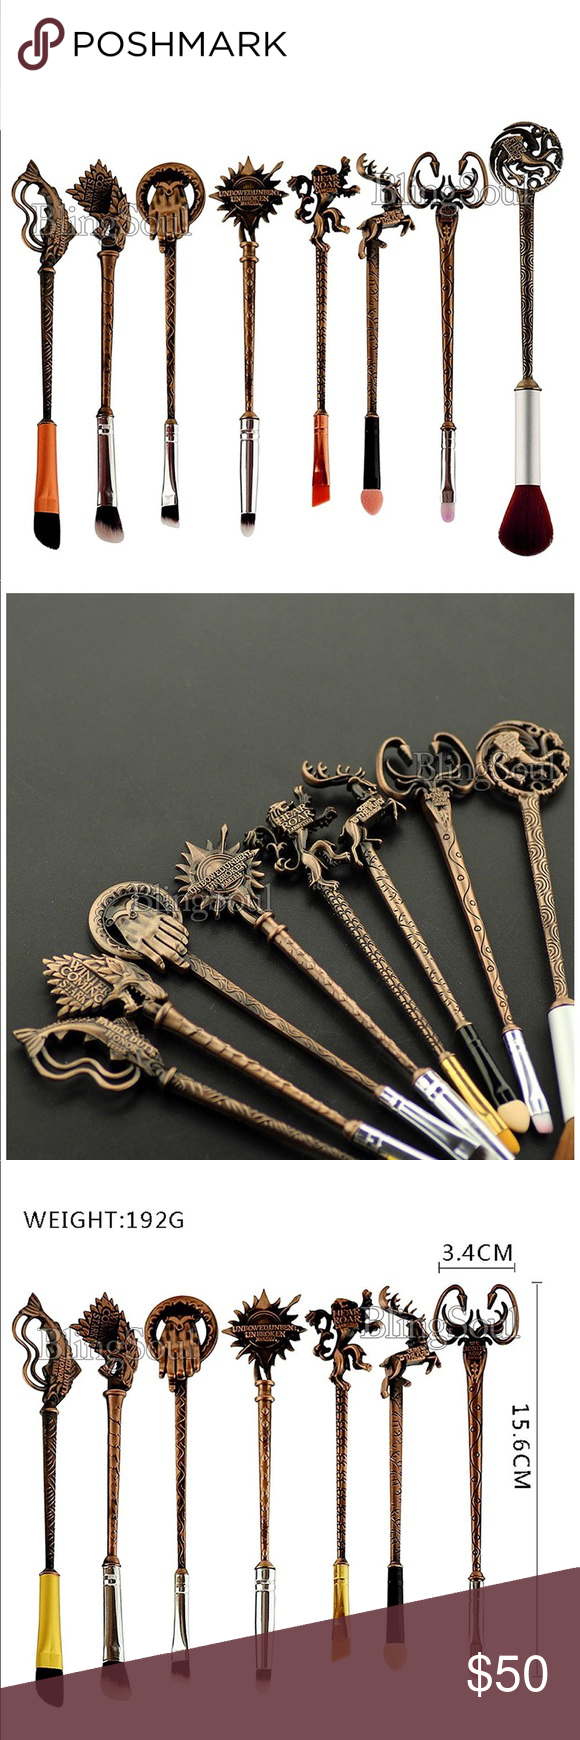 *NEW* Game Of Thrones Brush Set 10 pieces all designed